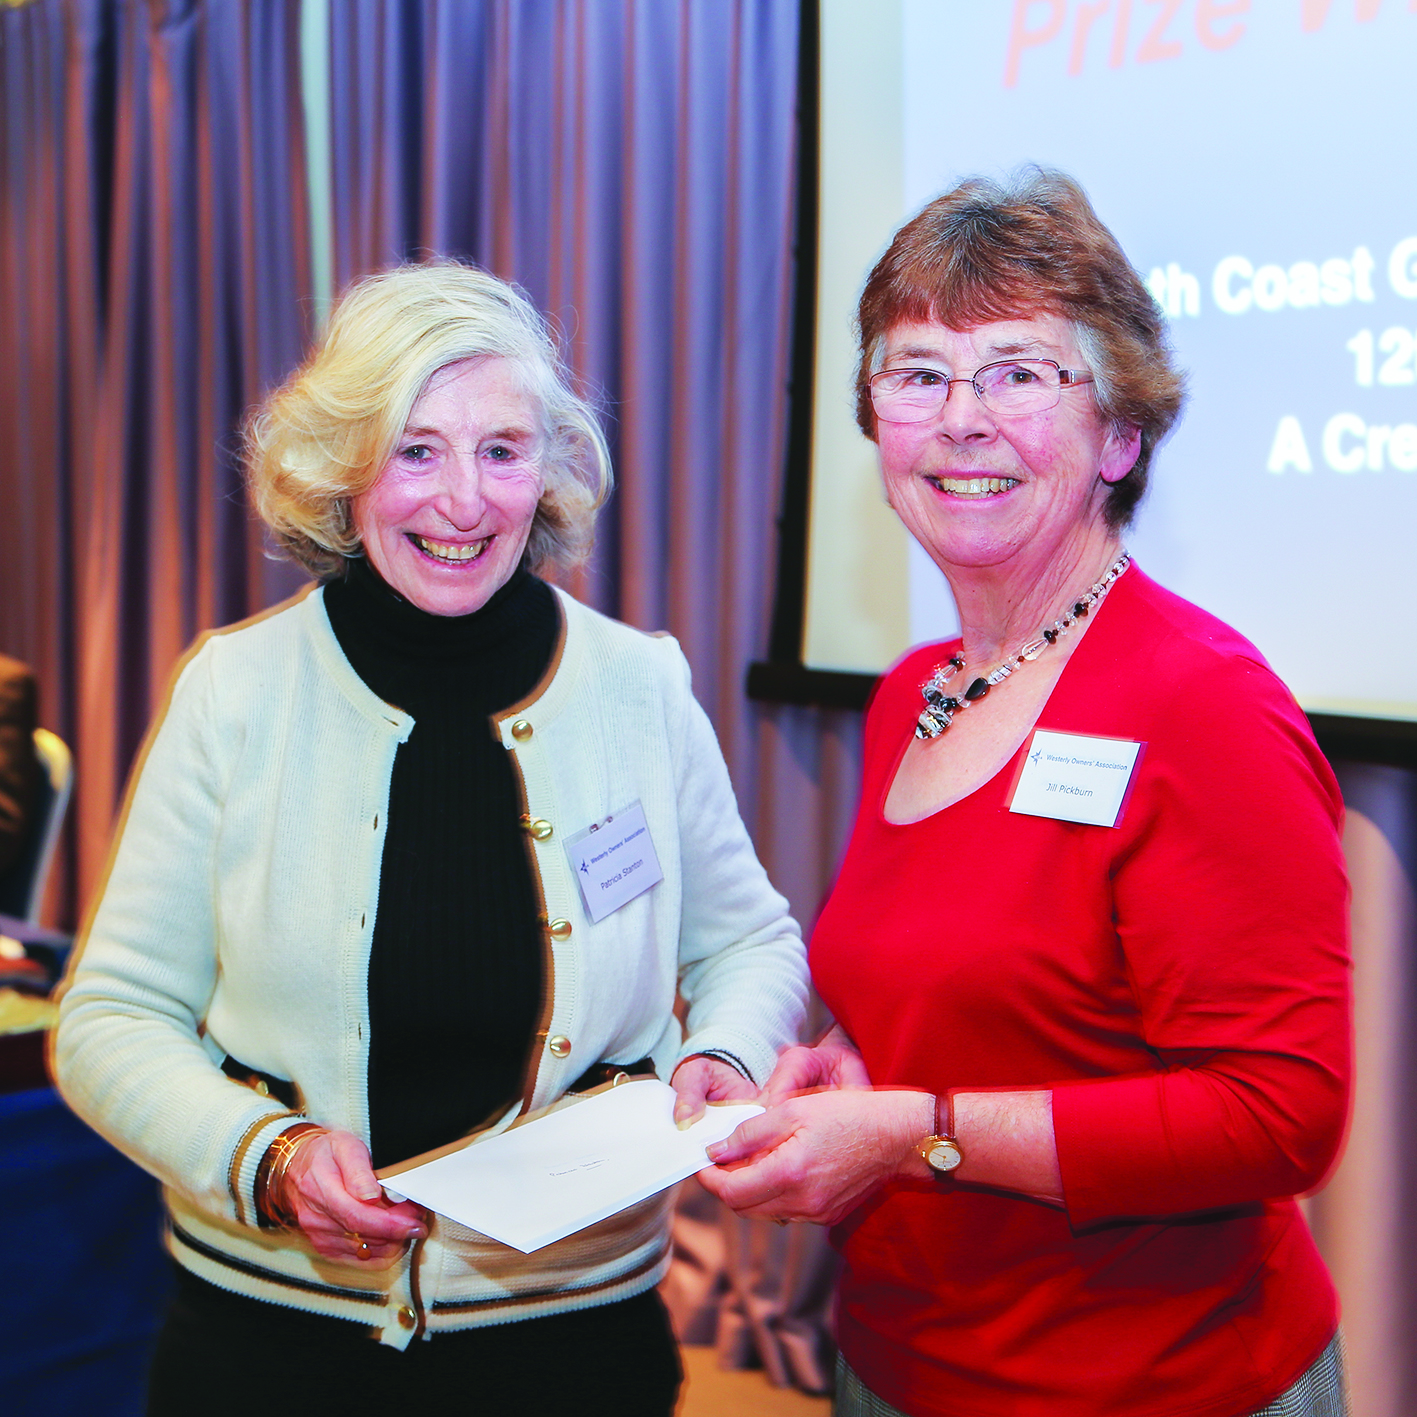 Patricia Stanton receives the Best Article Award